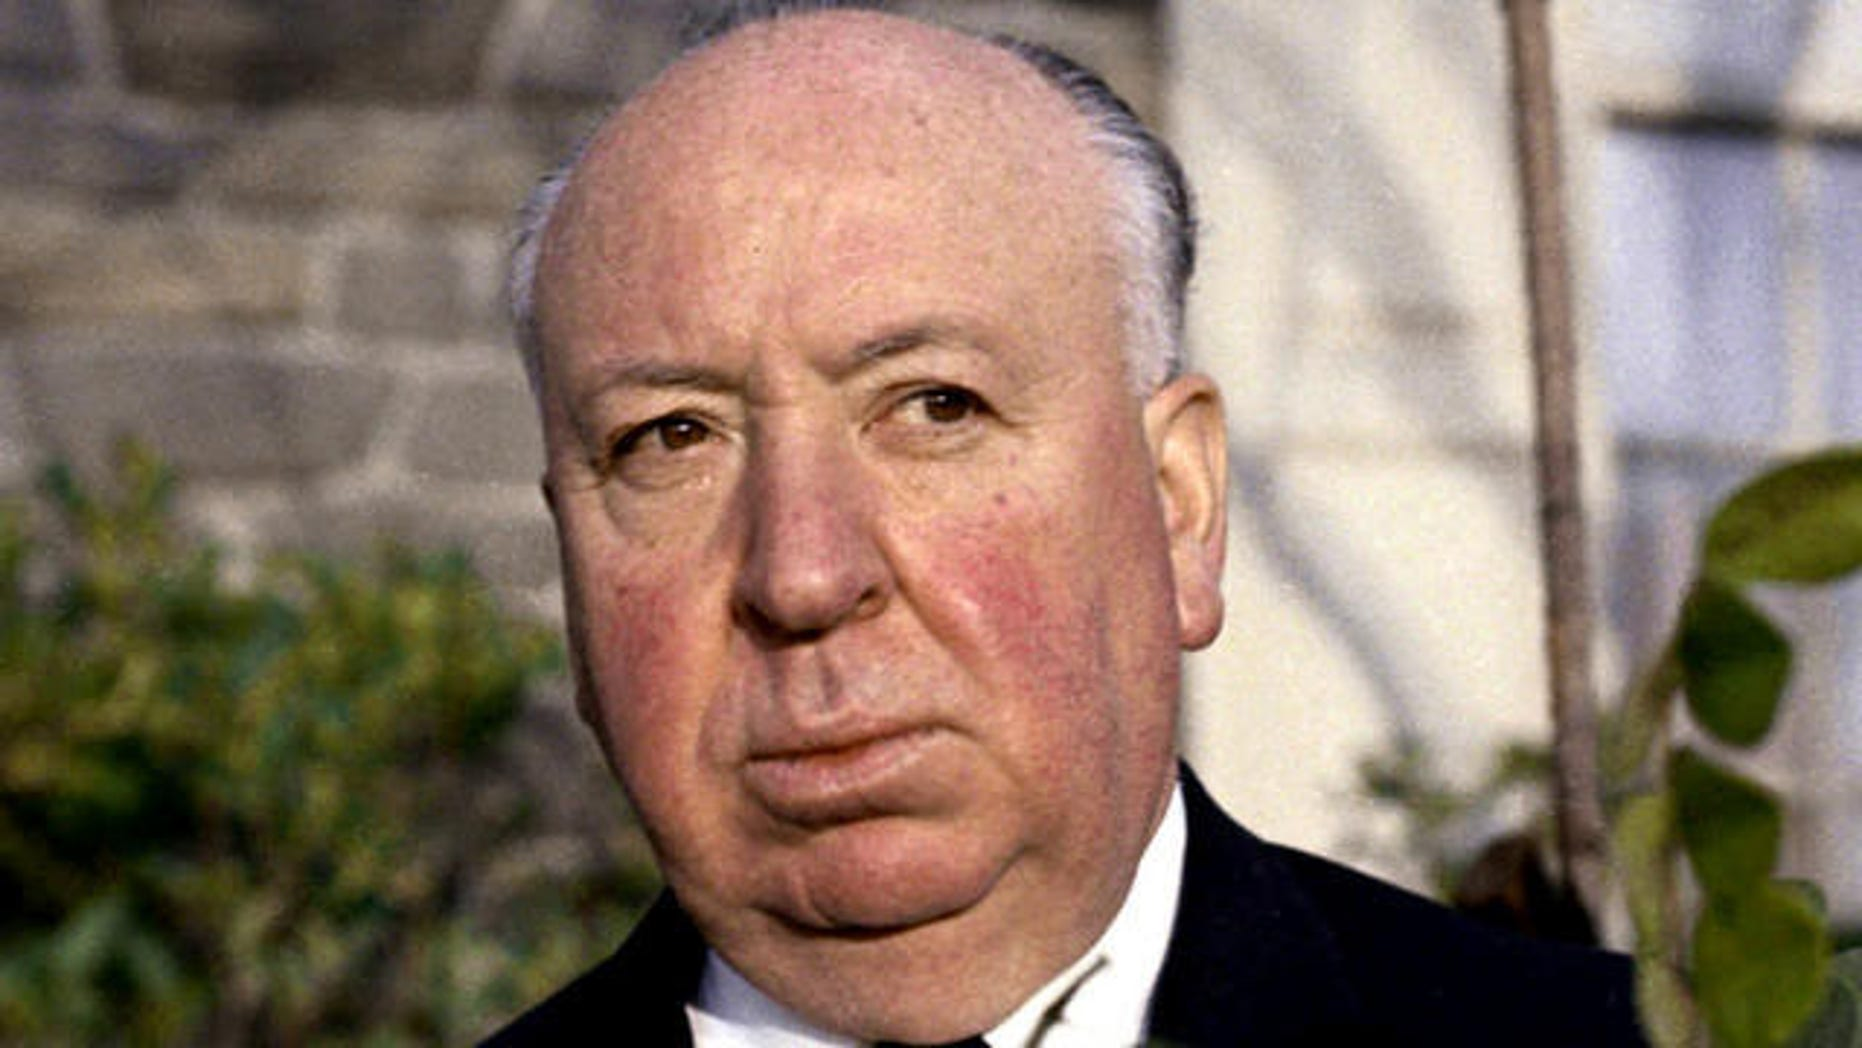 Alfred Hitchcock, seen here in 1964 (AP)